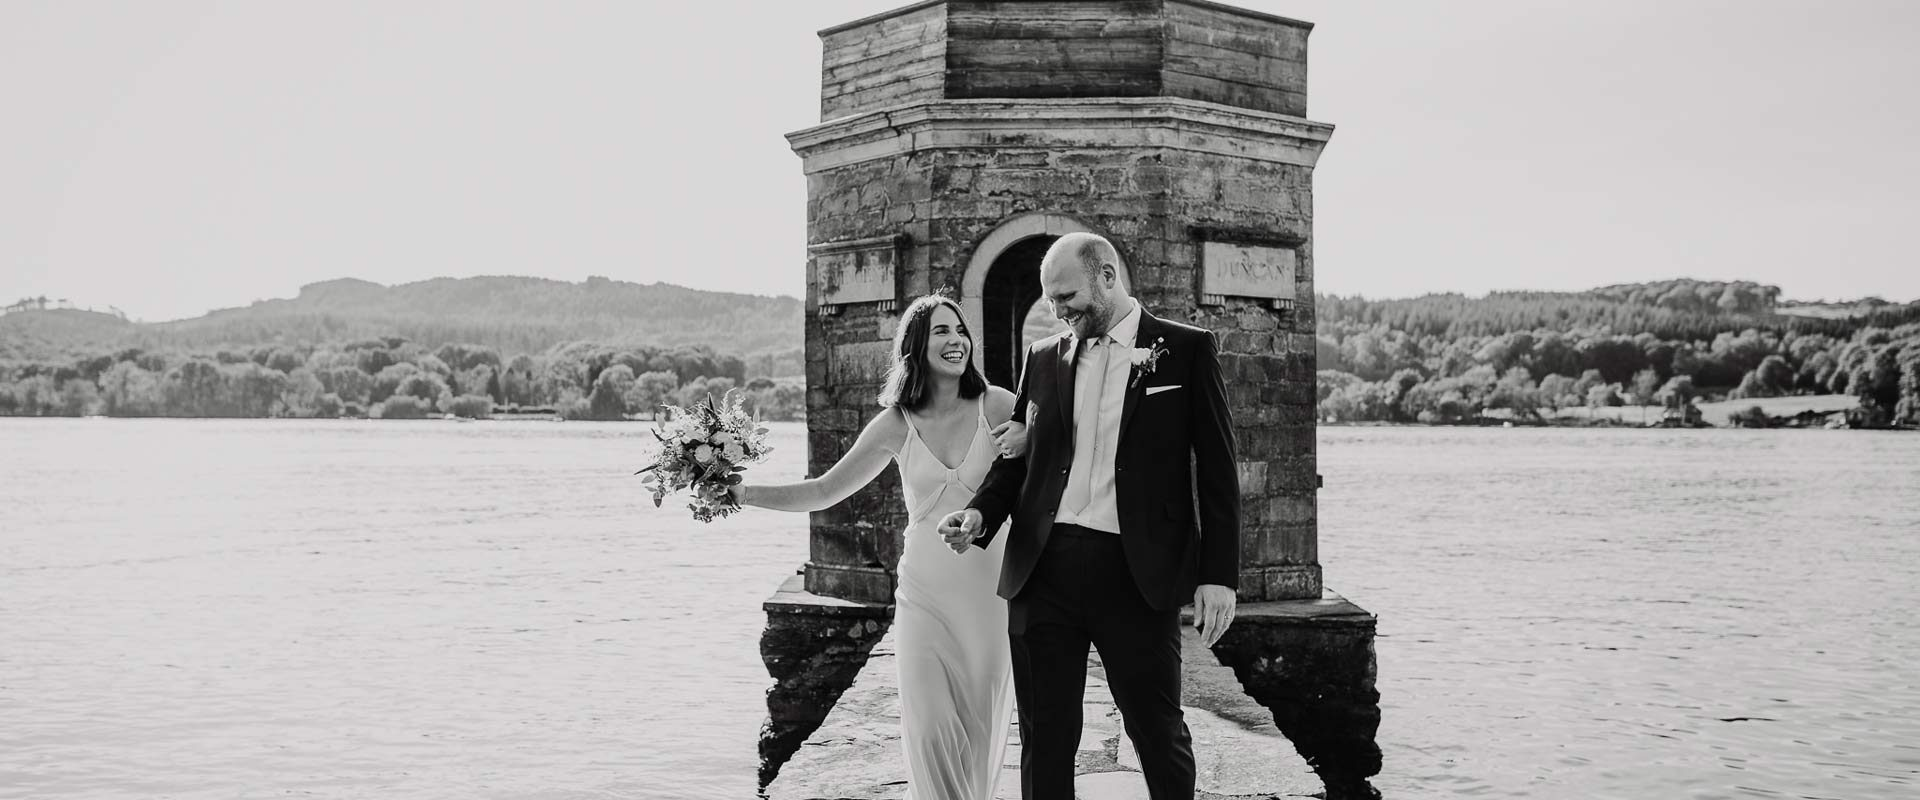 black and white picture of a bride and groom laughing on a pier on a lake